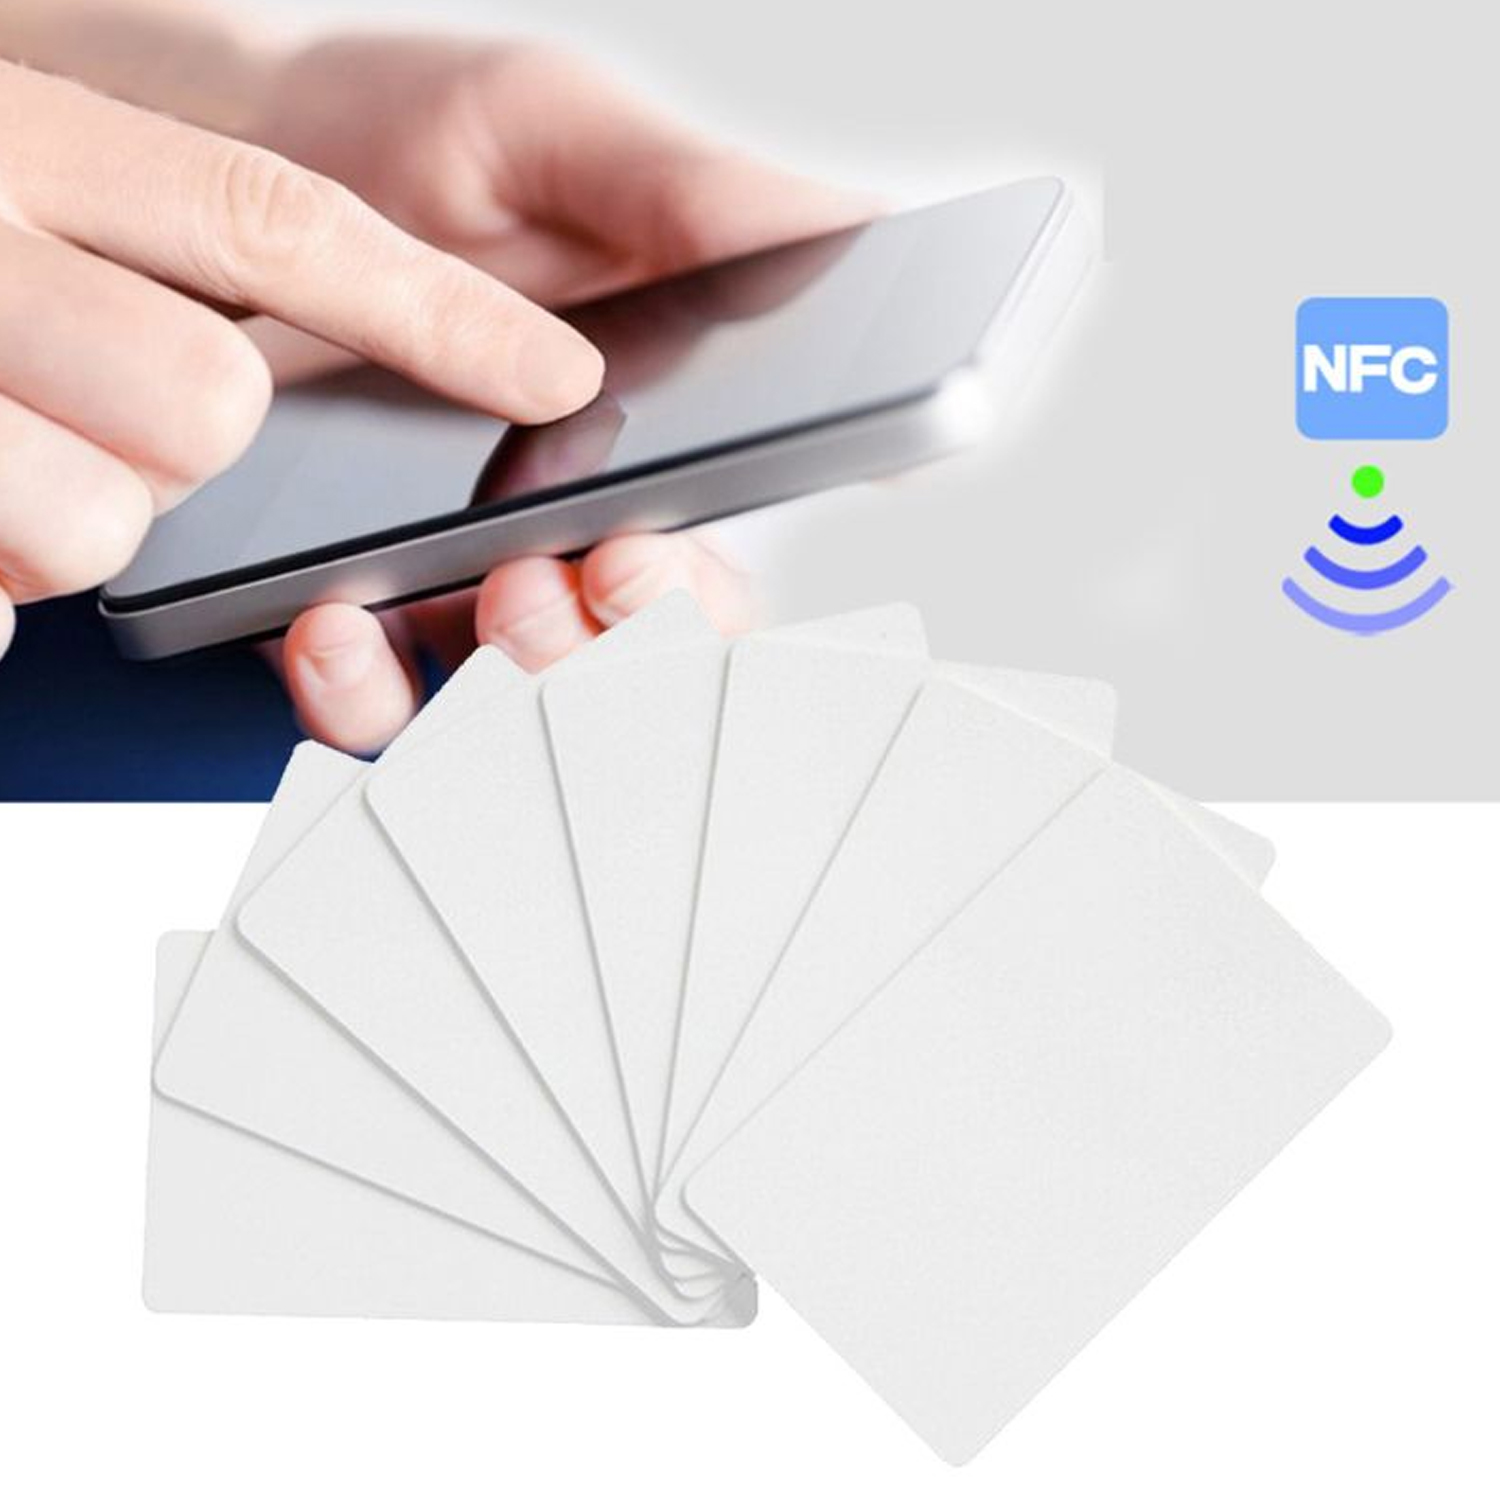 NFC Cards Rewritable Blank PVC Ntag215 NFC Cards for Tagmo Amiibo Games All NFC-Enabled Phone Devices Access Control Card